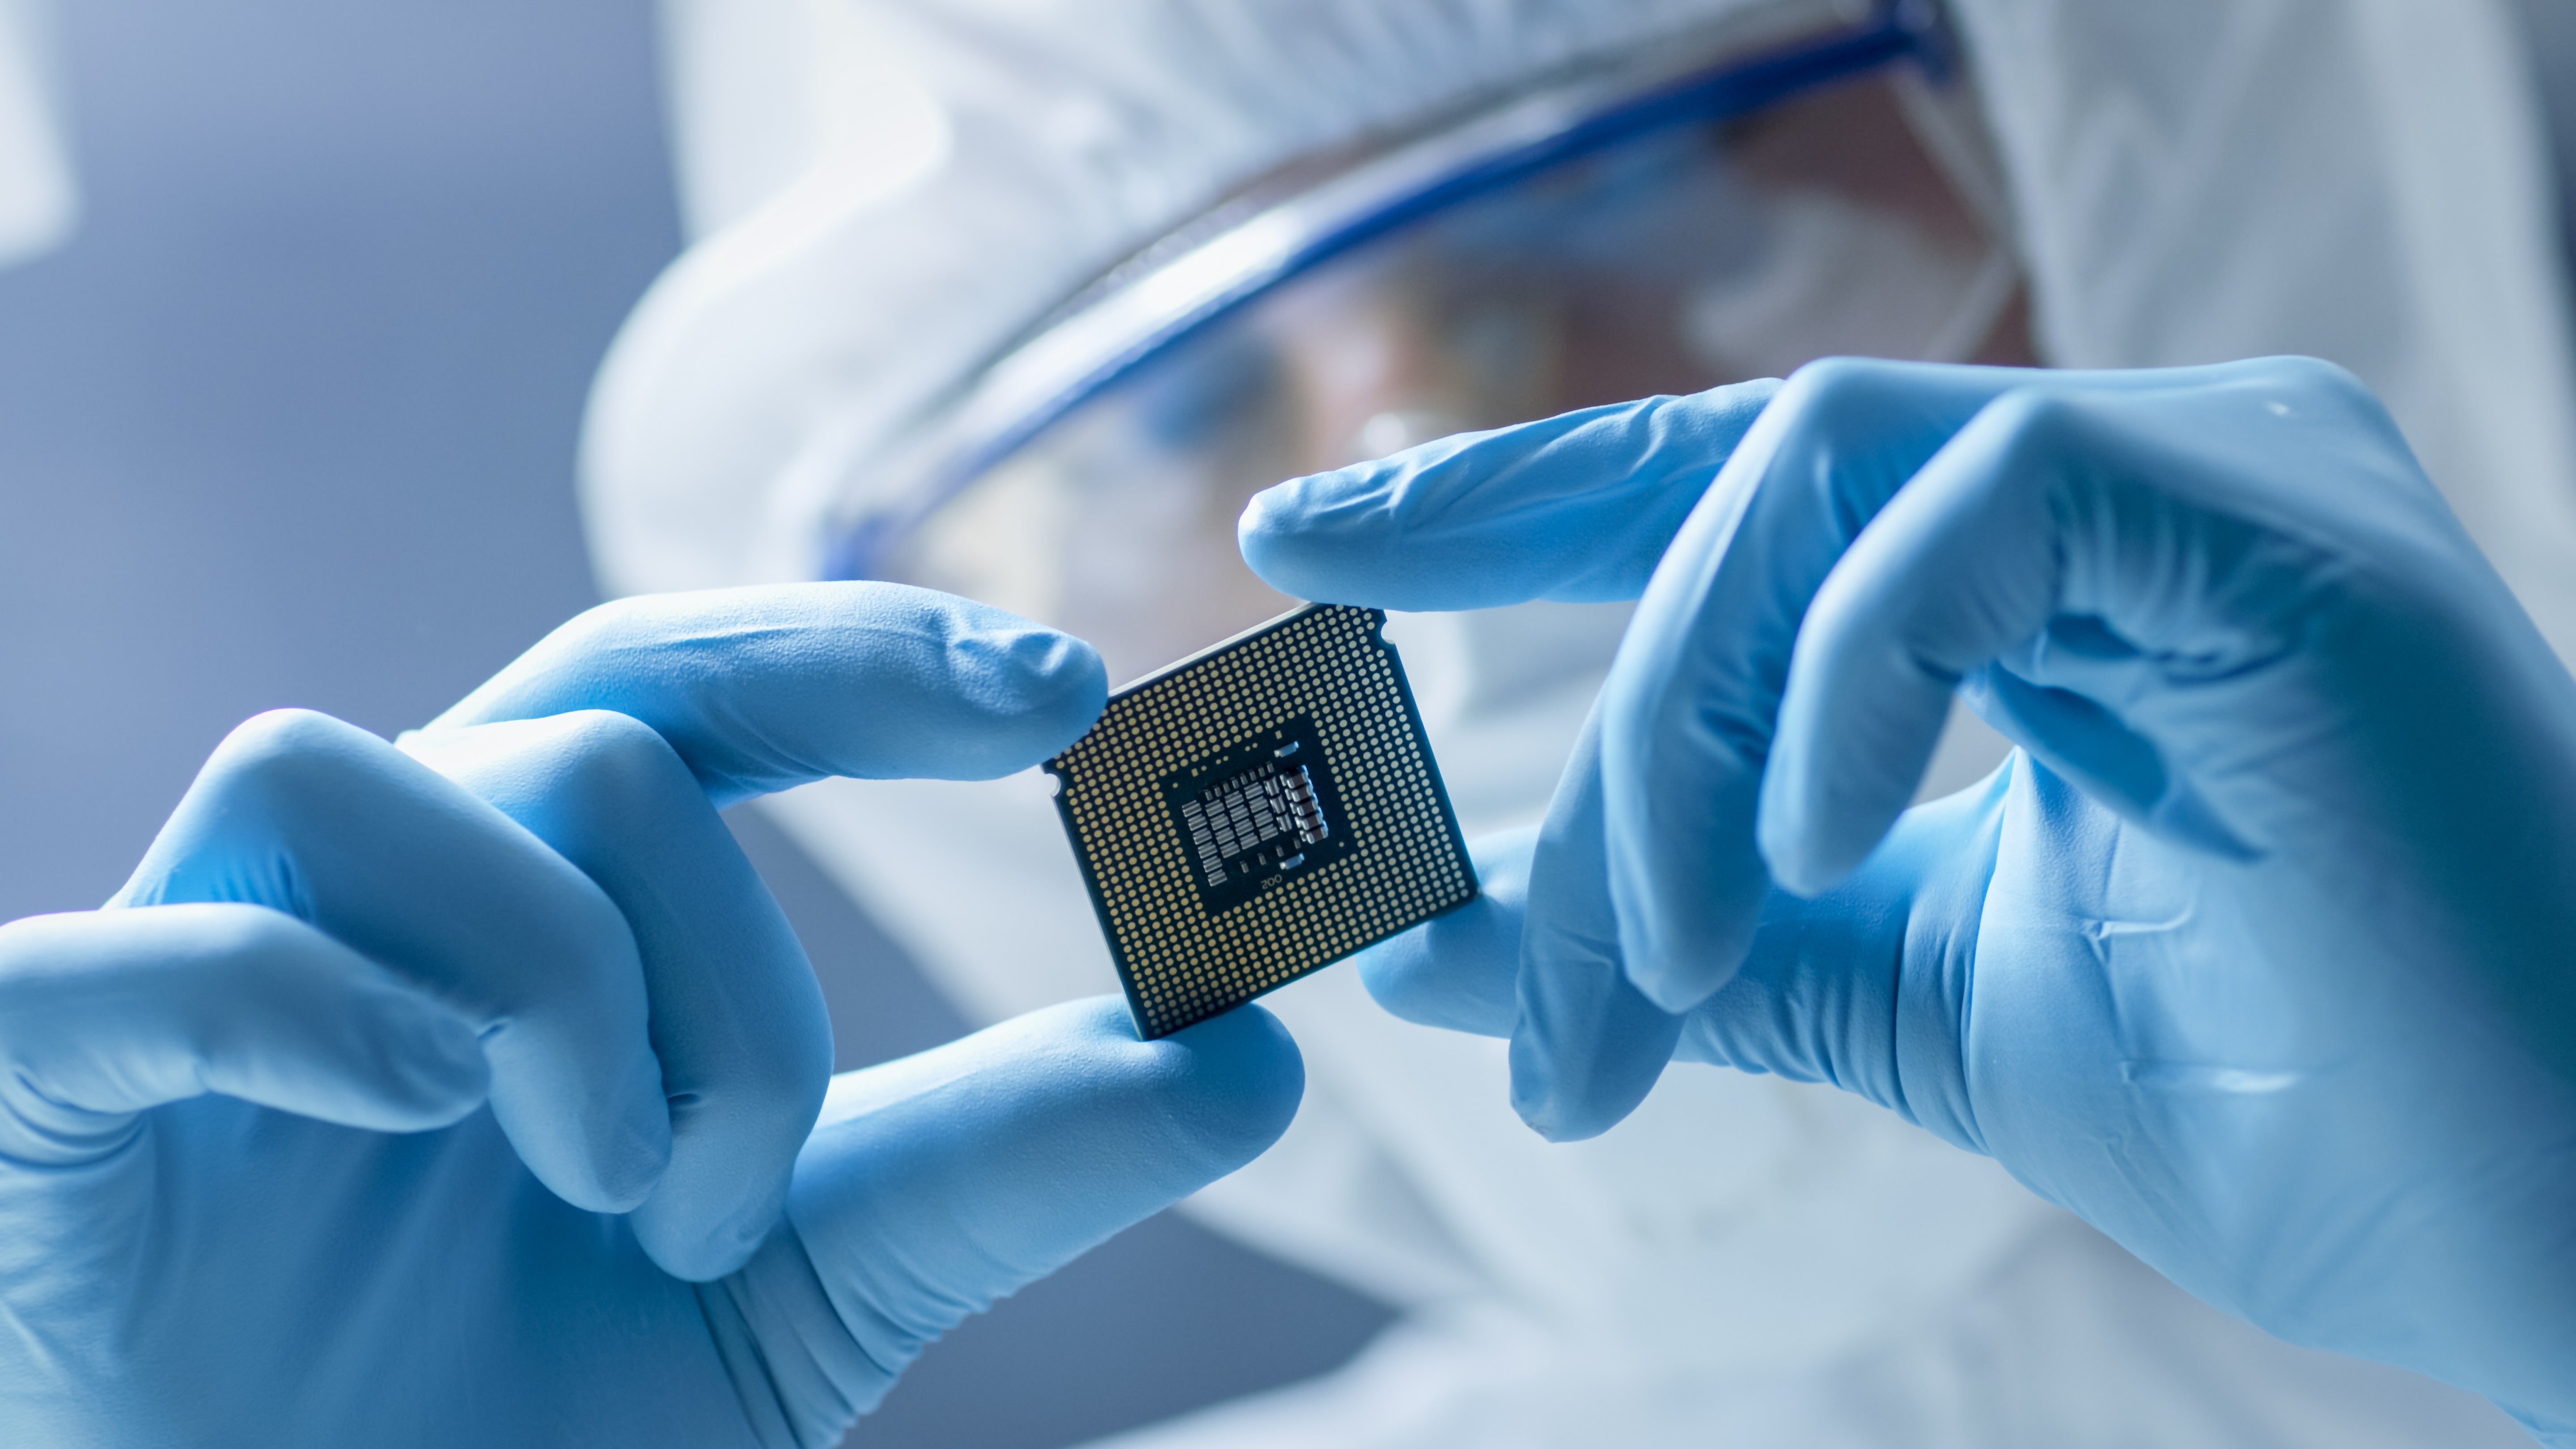 Here's Why AMD's Acquisition of Xilinx Is Such a Great Deal